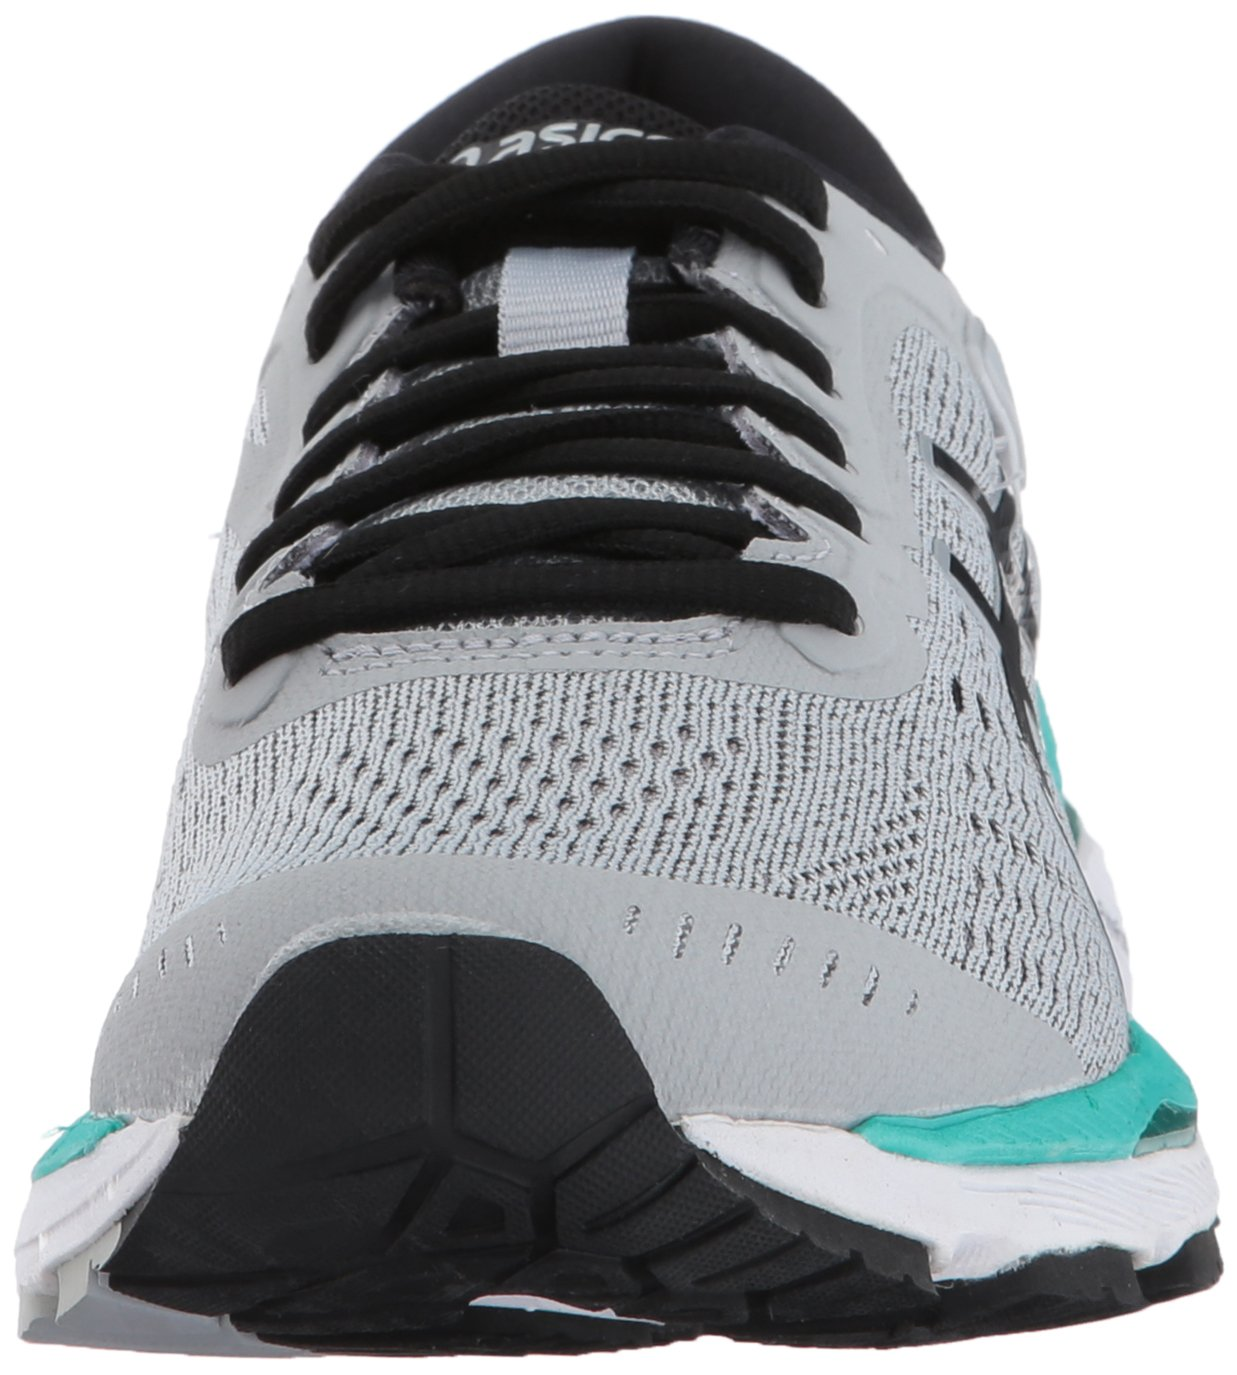 ASICS Women's Gel-Kayano 24 Running Shoe B01N3PK23S 7.5 B(M) US|Mid Grey/Black/Atlantis